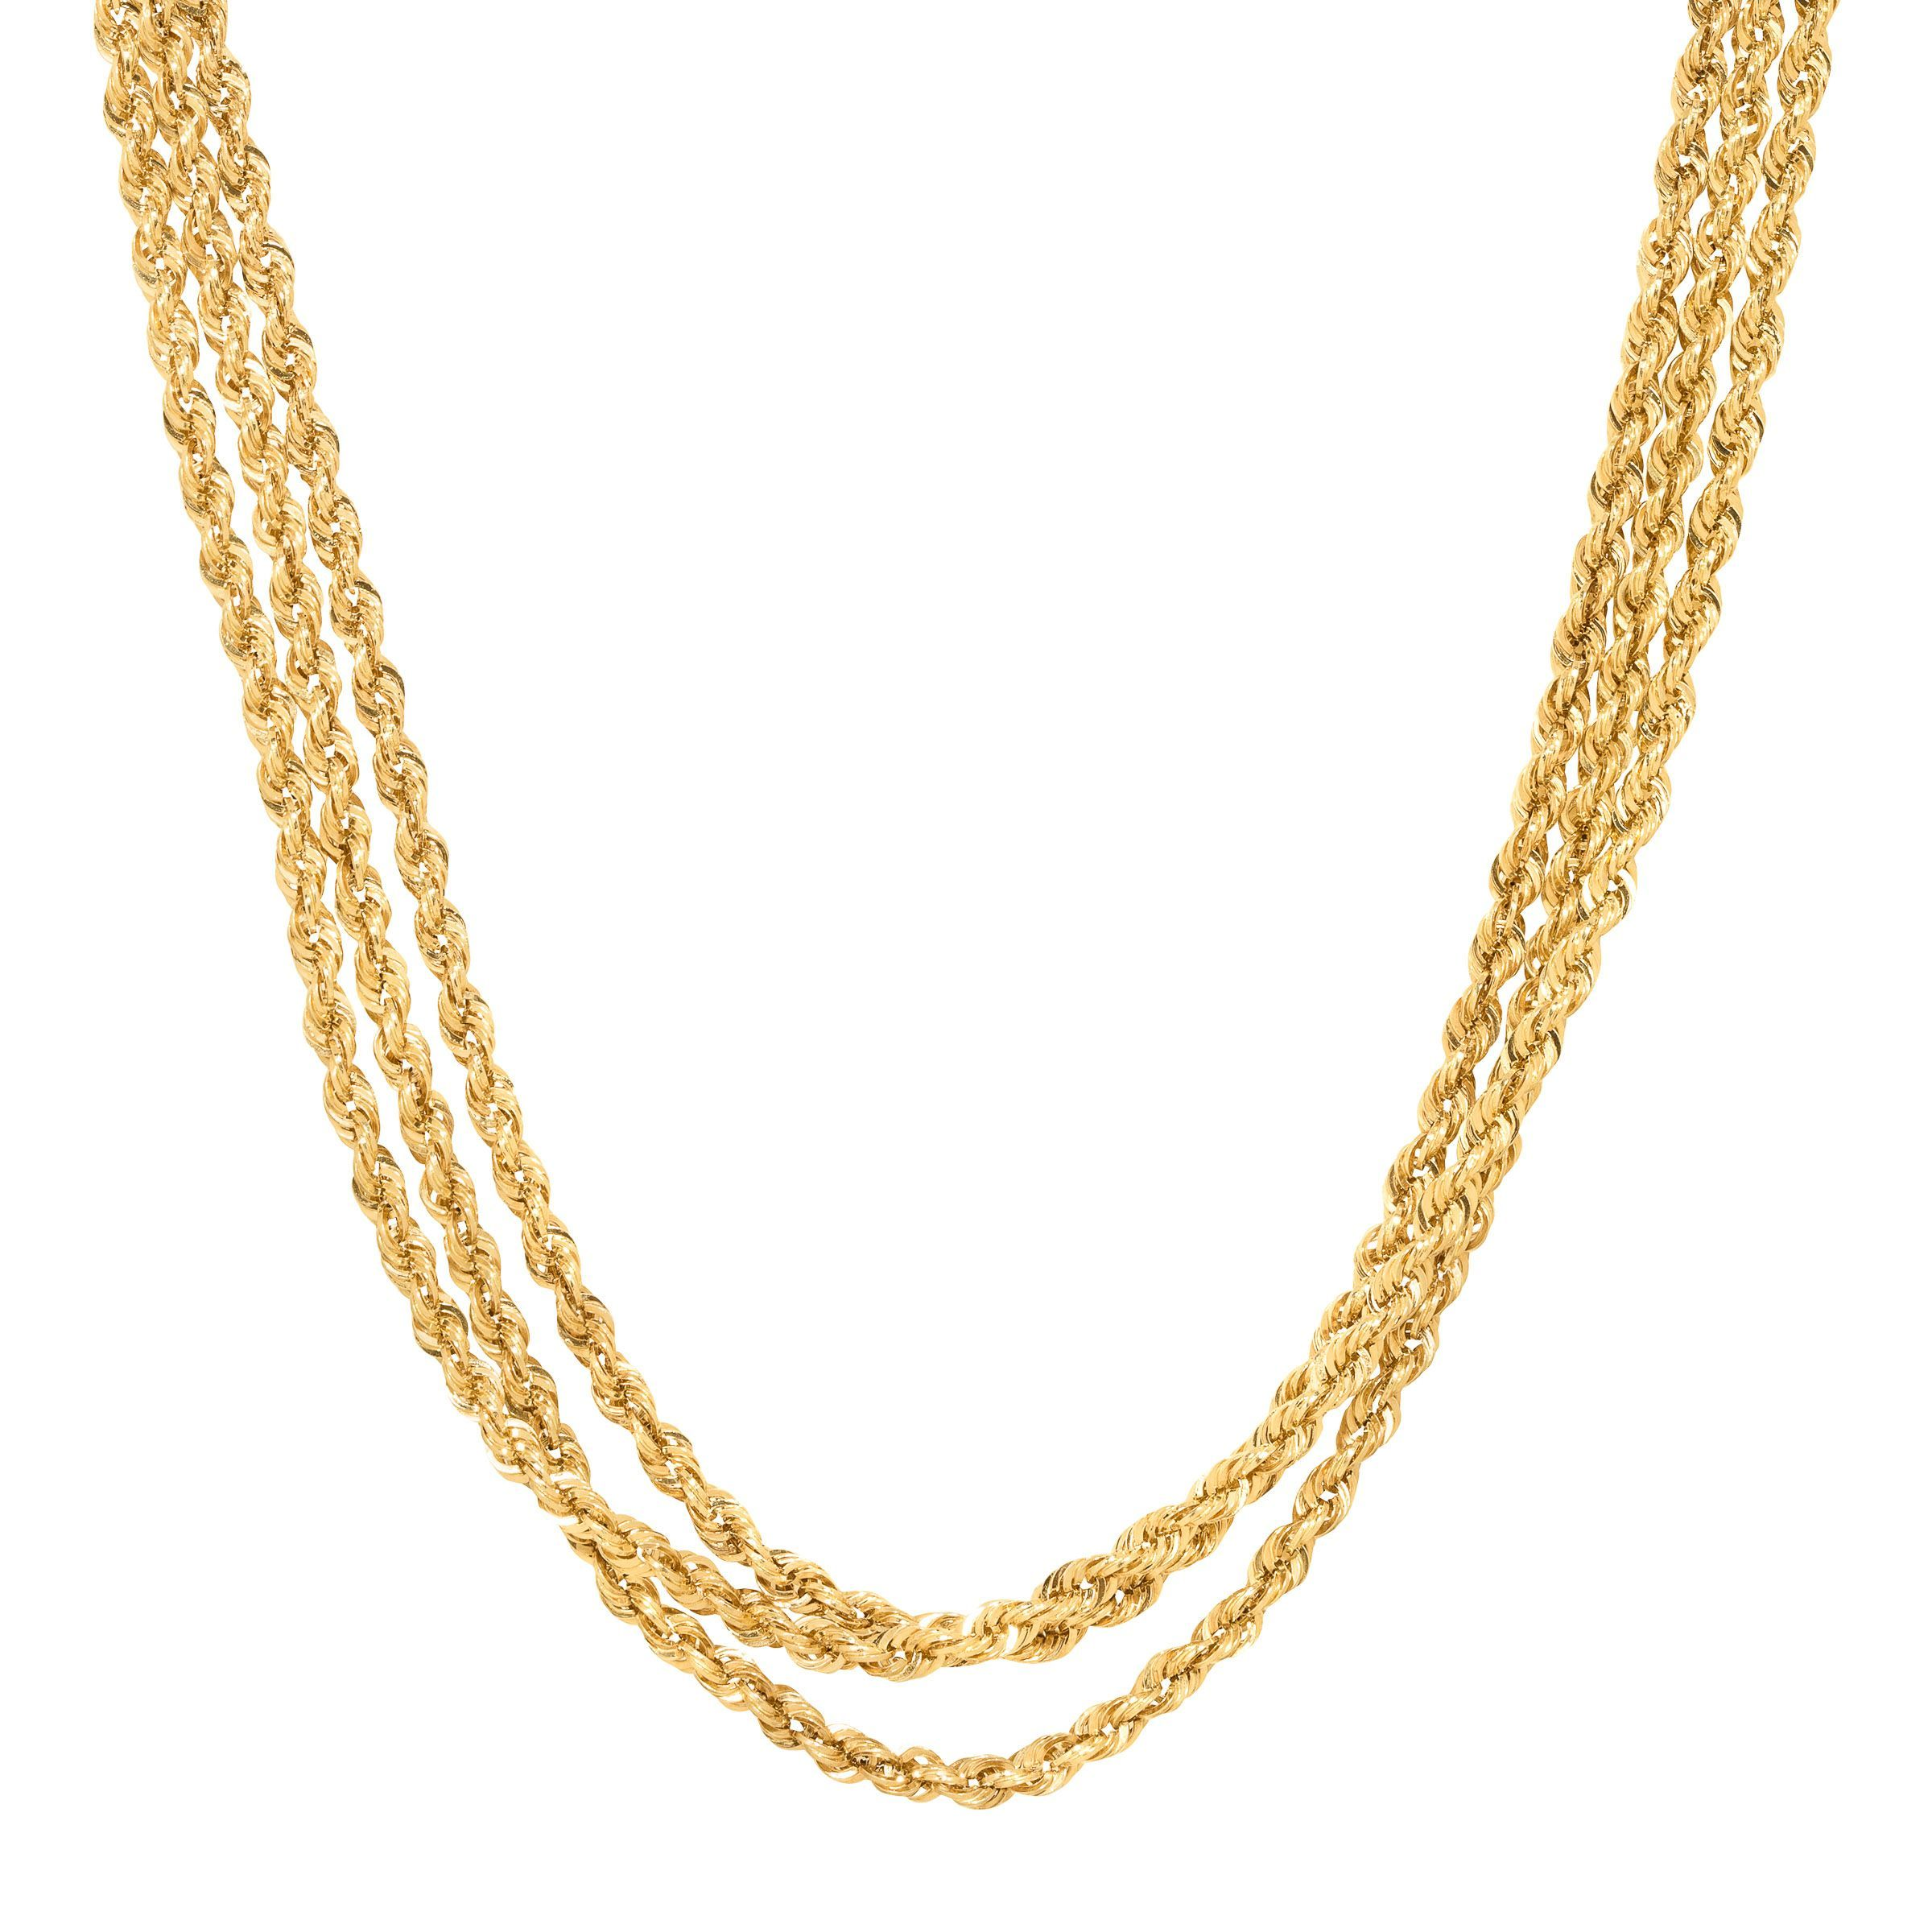 fb75e98313284 Details about Just Gold Three-Row Rope Chain Necklace with Diamonds in 14K  Gold